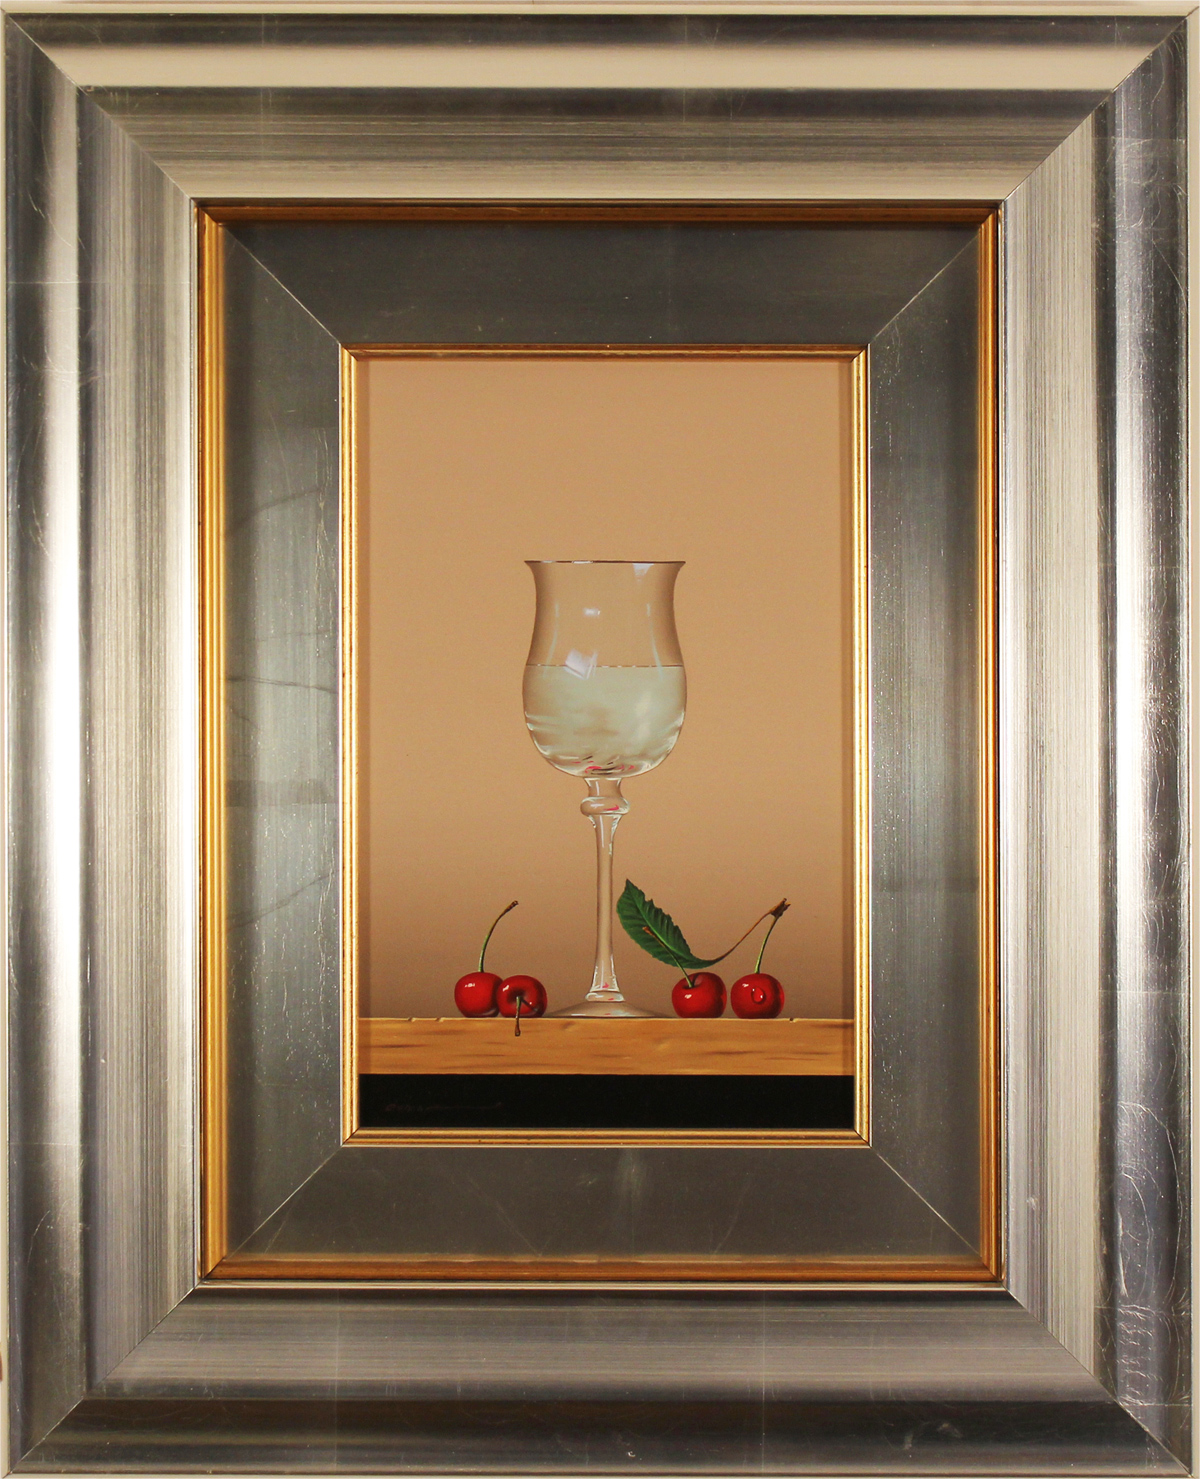 Casas, Original oil painting on panel, Glass Fruits, click to enlarge